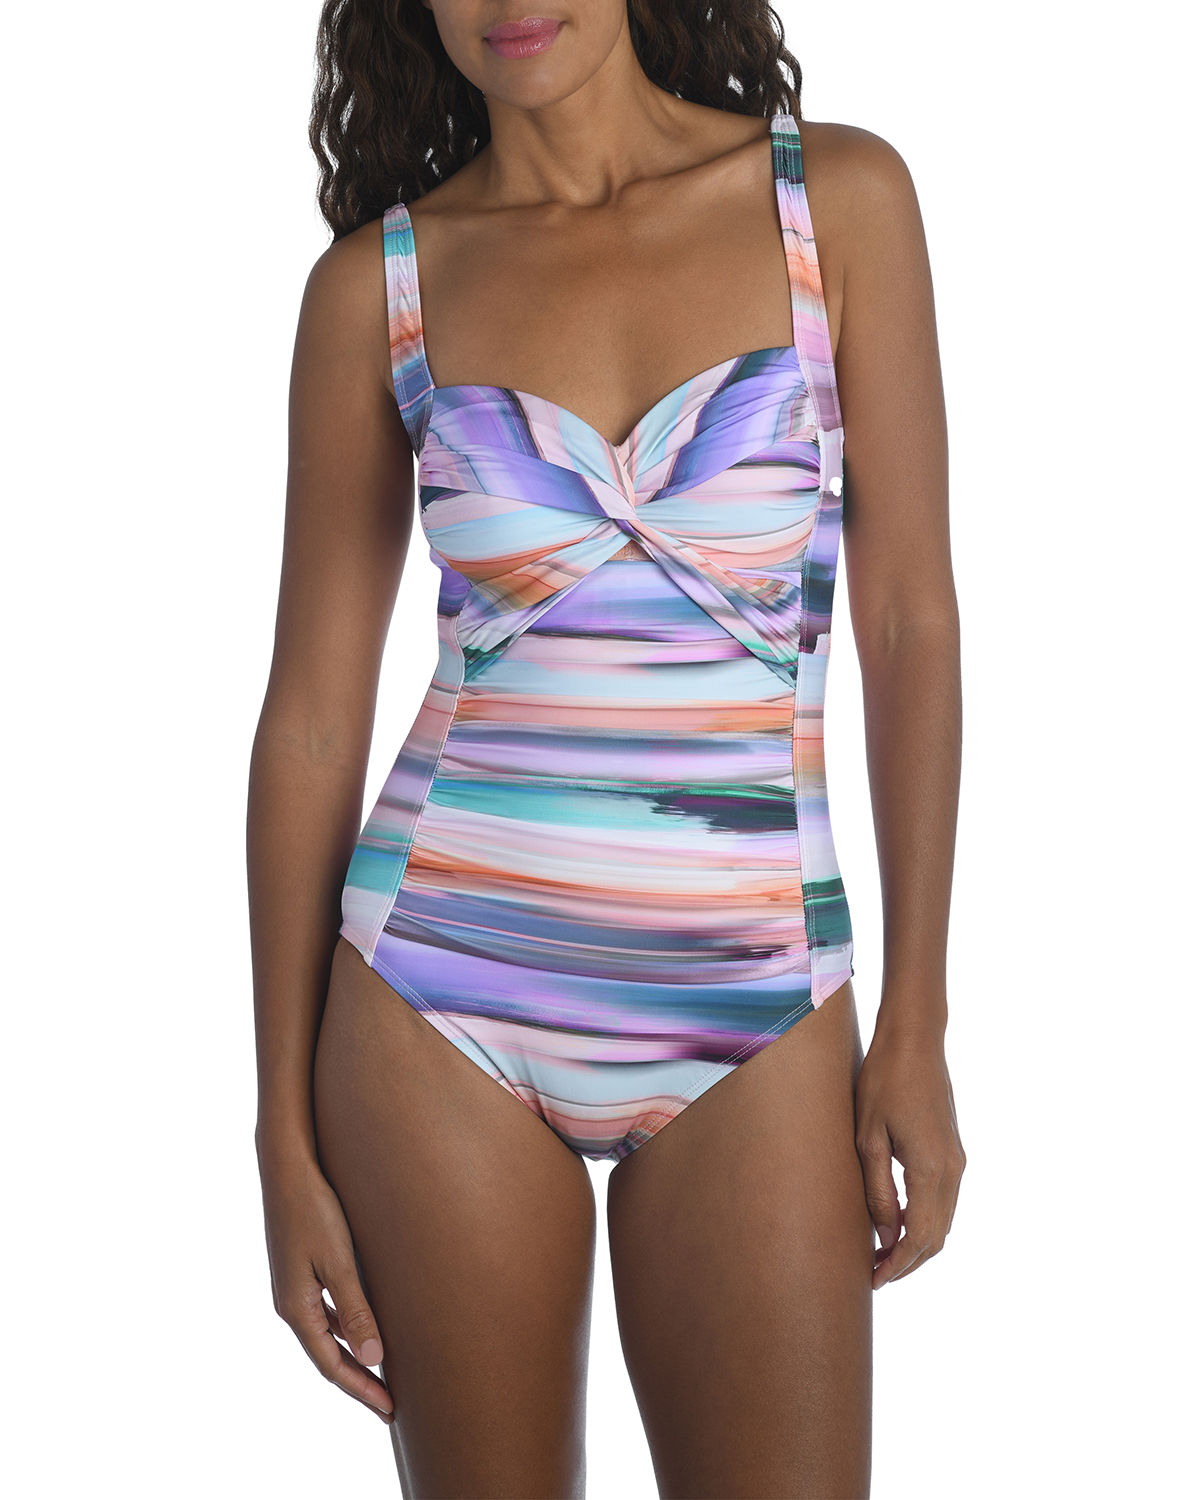 Ocean Tides Mio Molded One-Piece Swimsuit